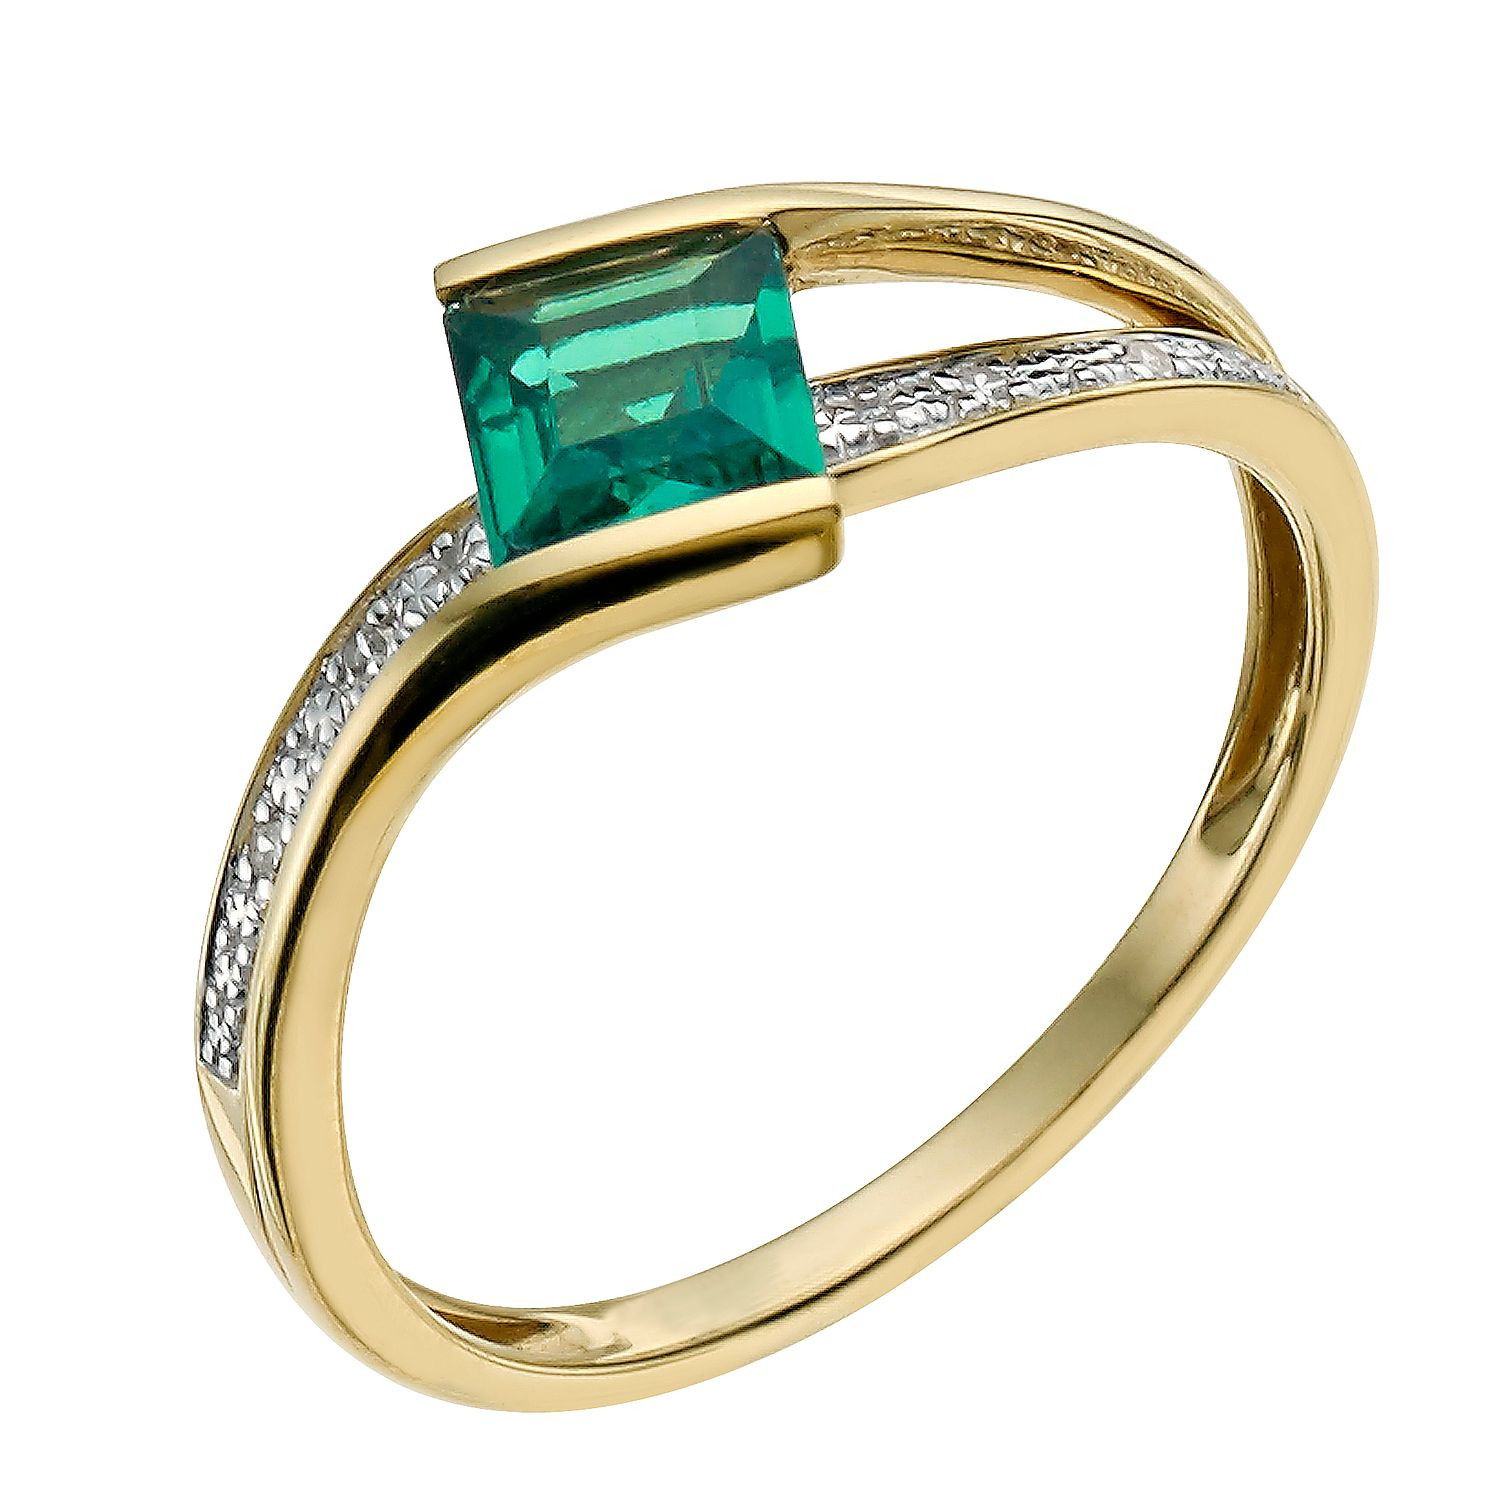 beers de engagement db gold solitaire yellow emerald ring classic cut